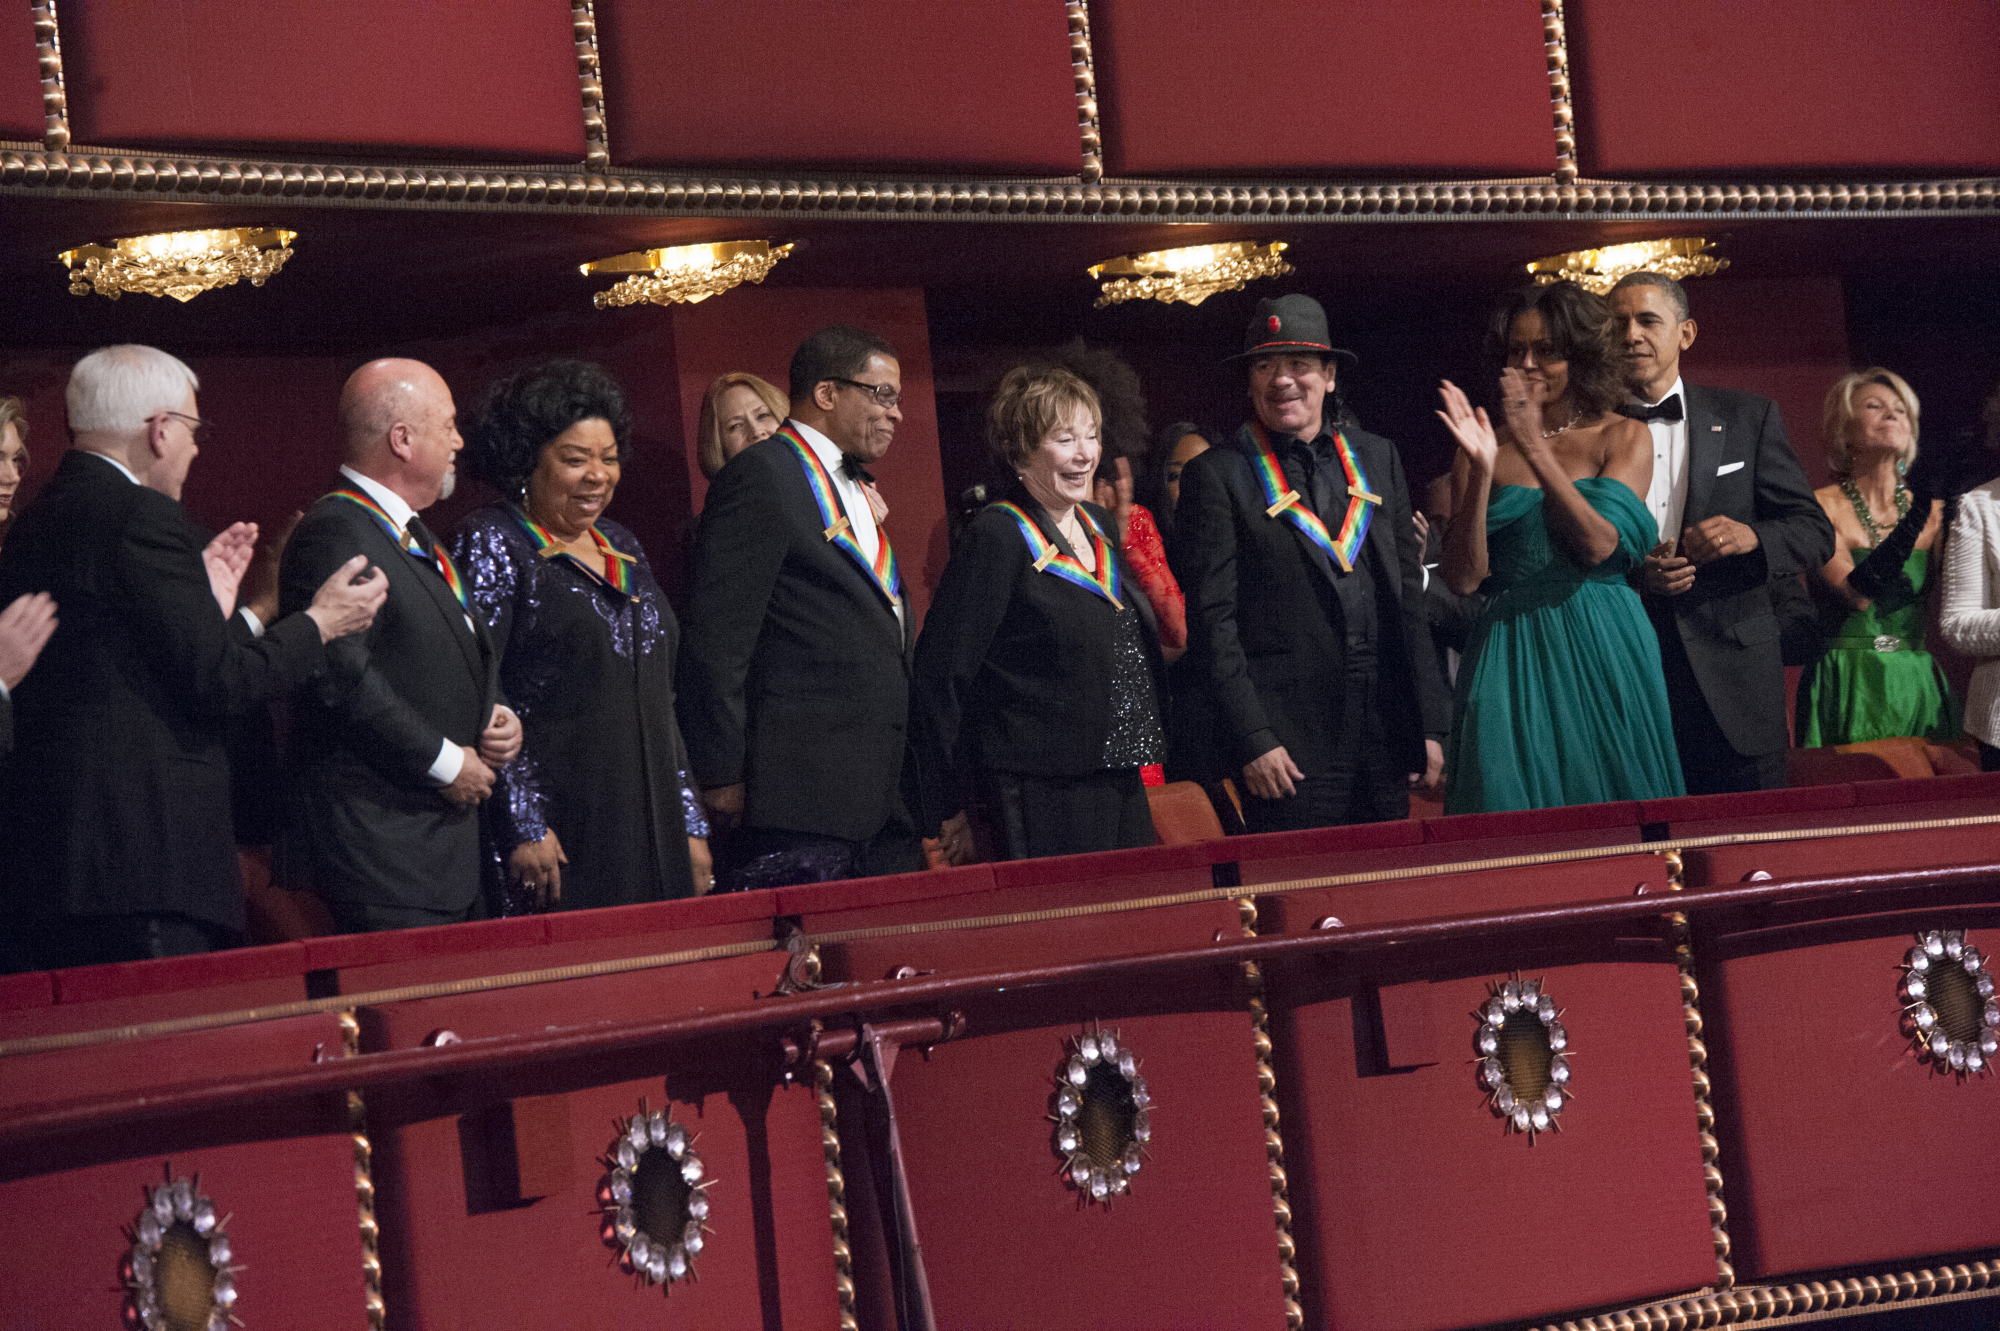 THE 36TH ANNUAL KENNEDY CENTER HONORS